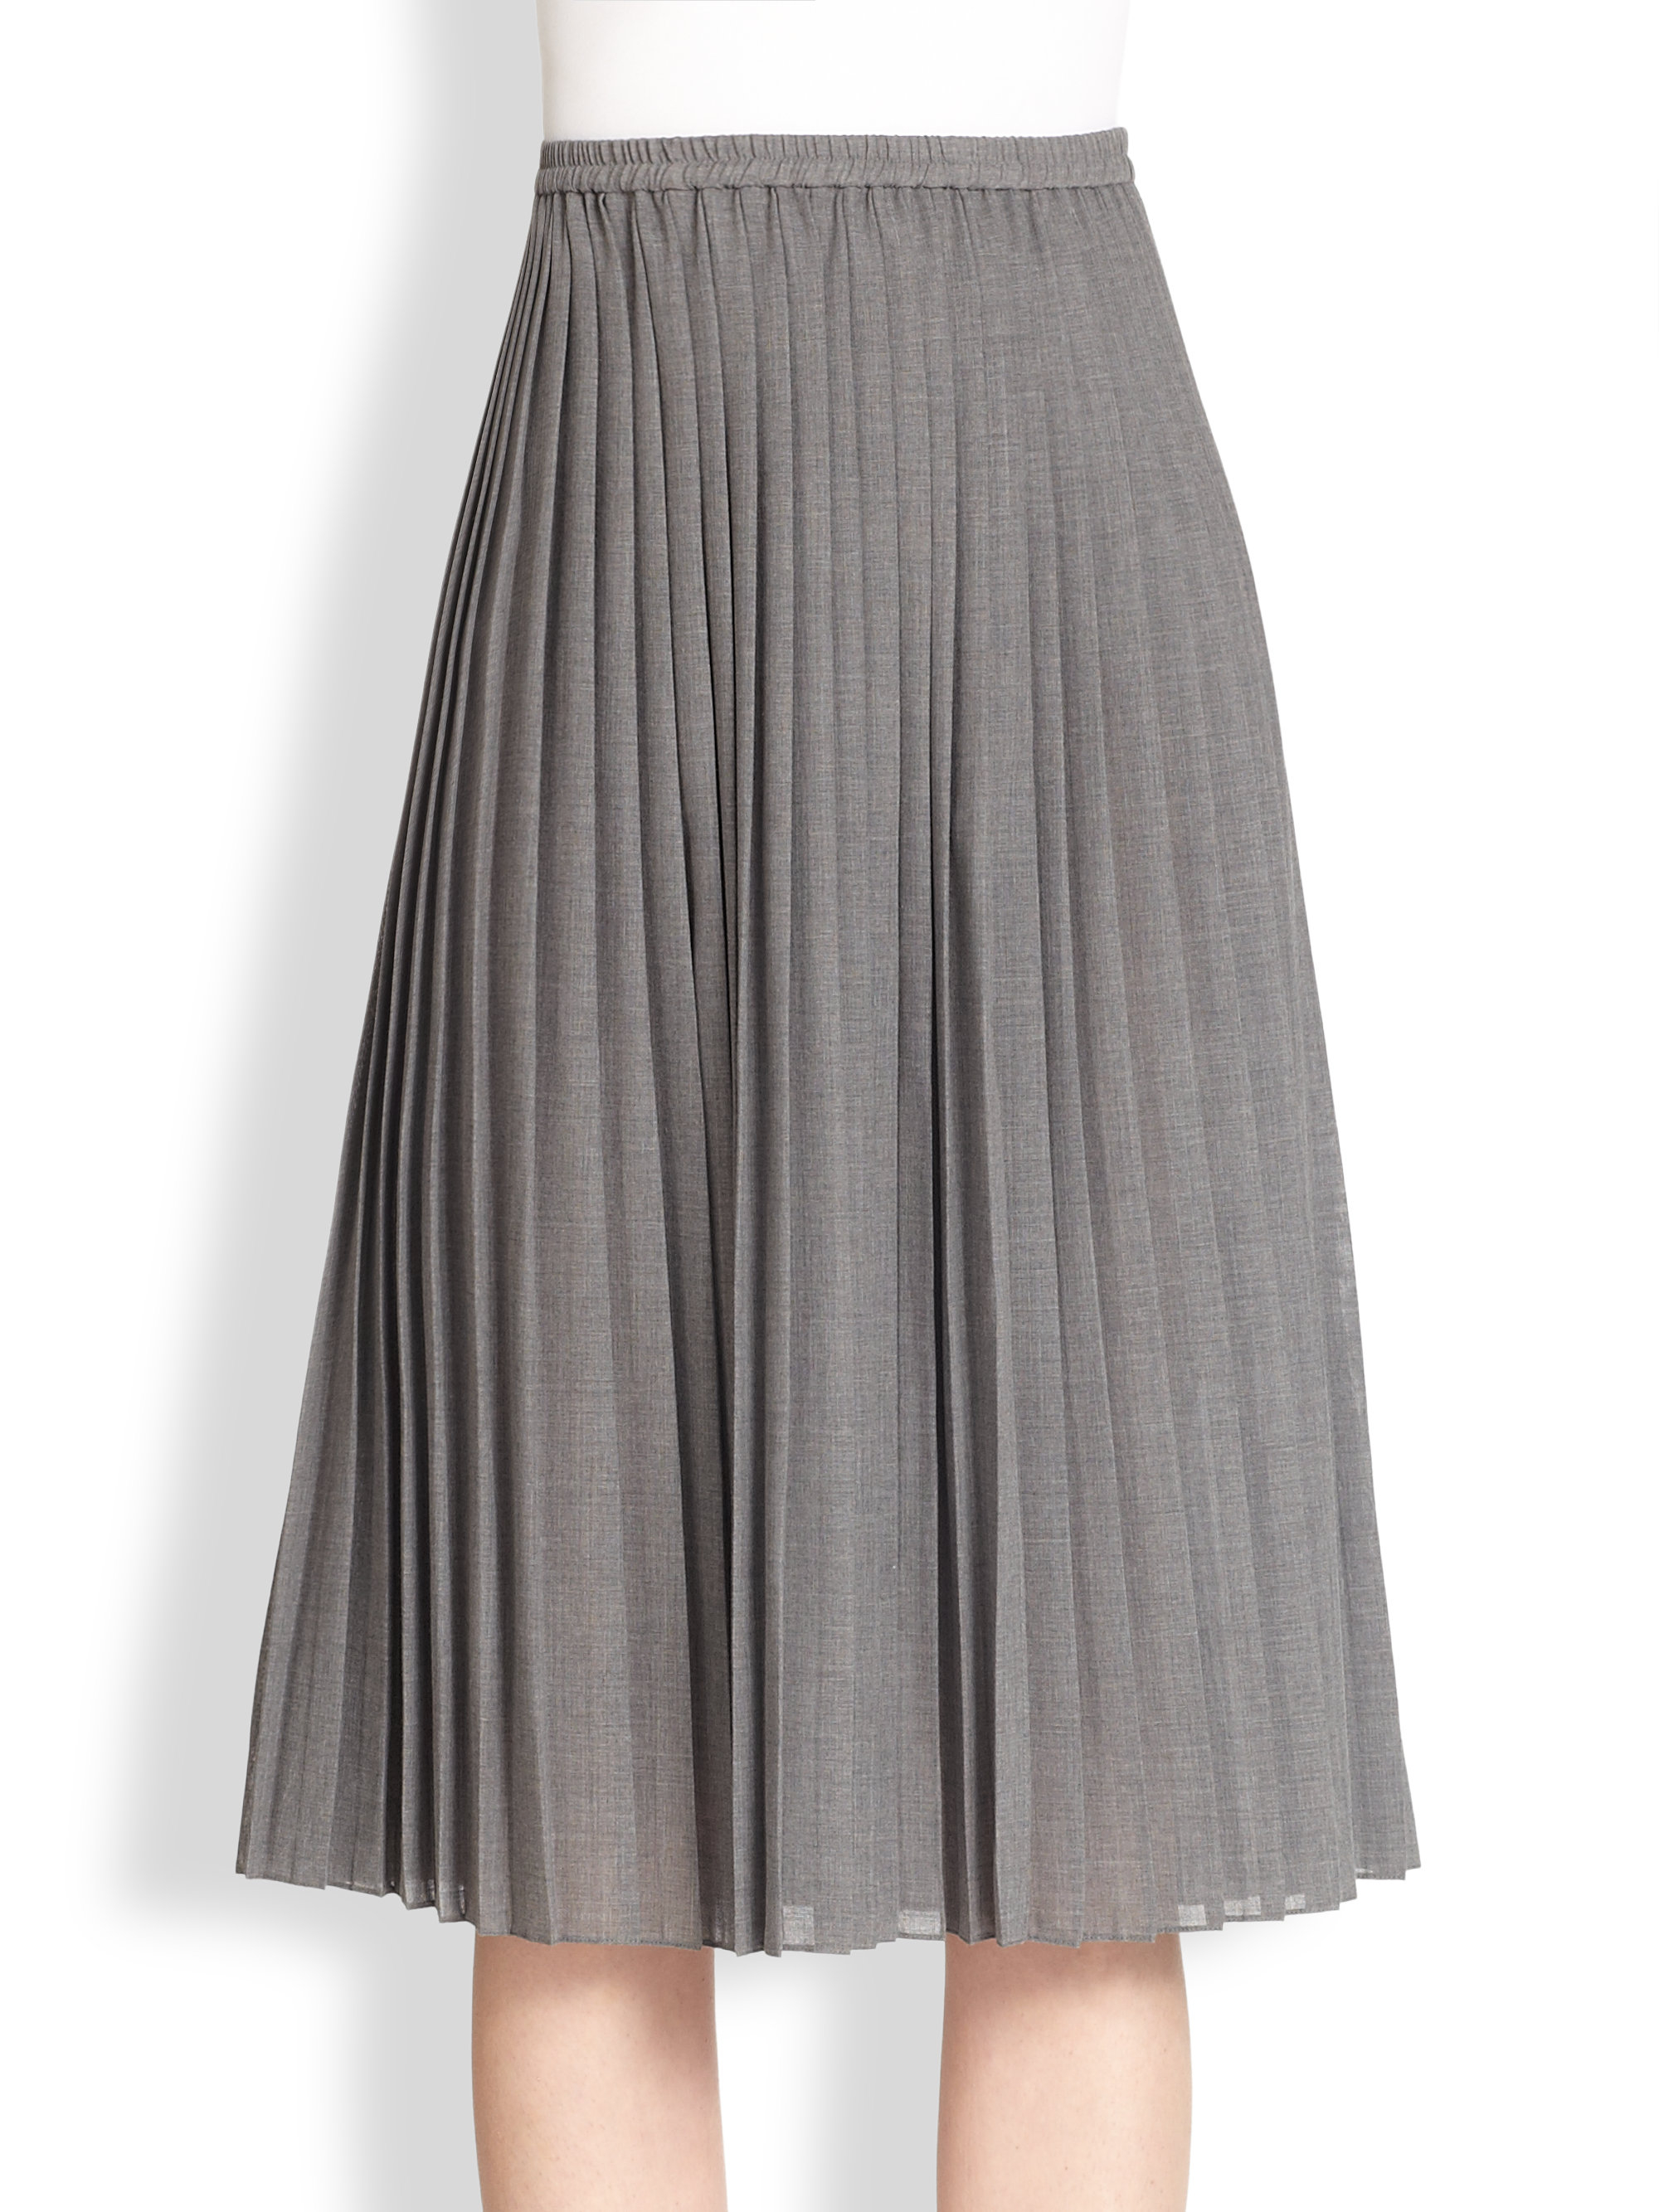 Gray Pleated Skirt - Dress Ala